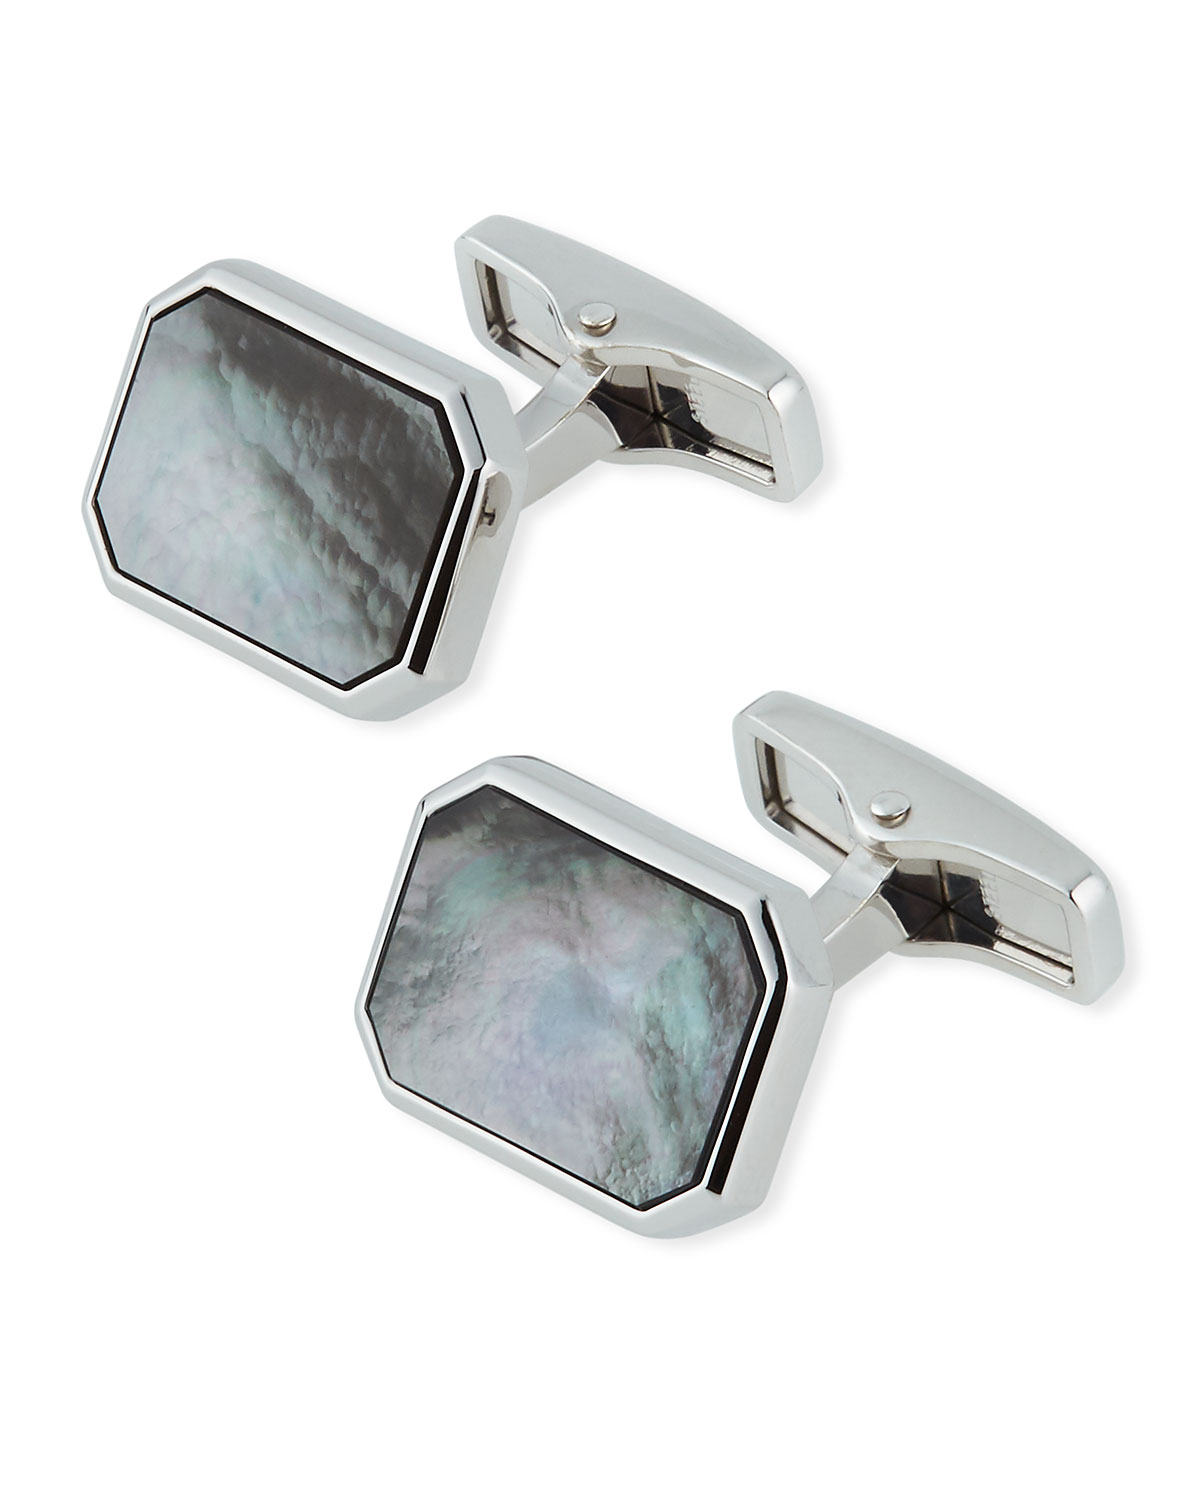 Dunhill Accessories CADOGAN GRAY MOTHER-OF-PEARL PLAQUE CUFFLINKS